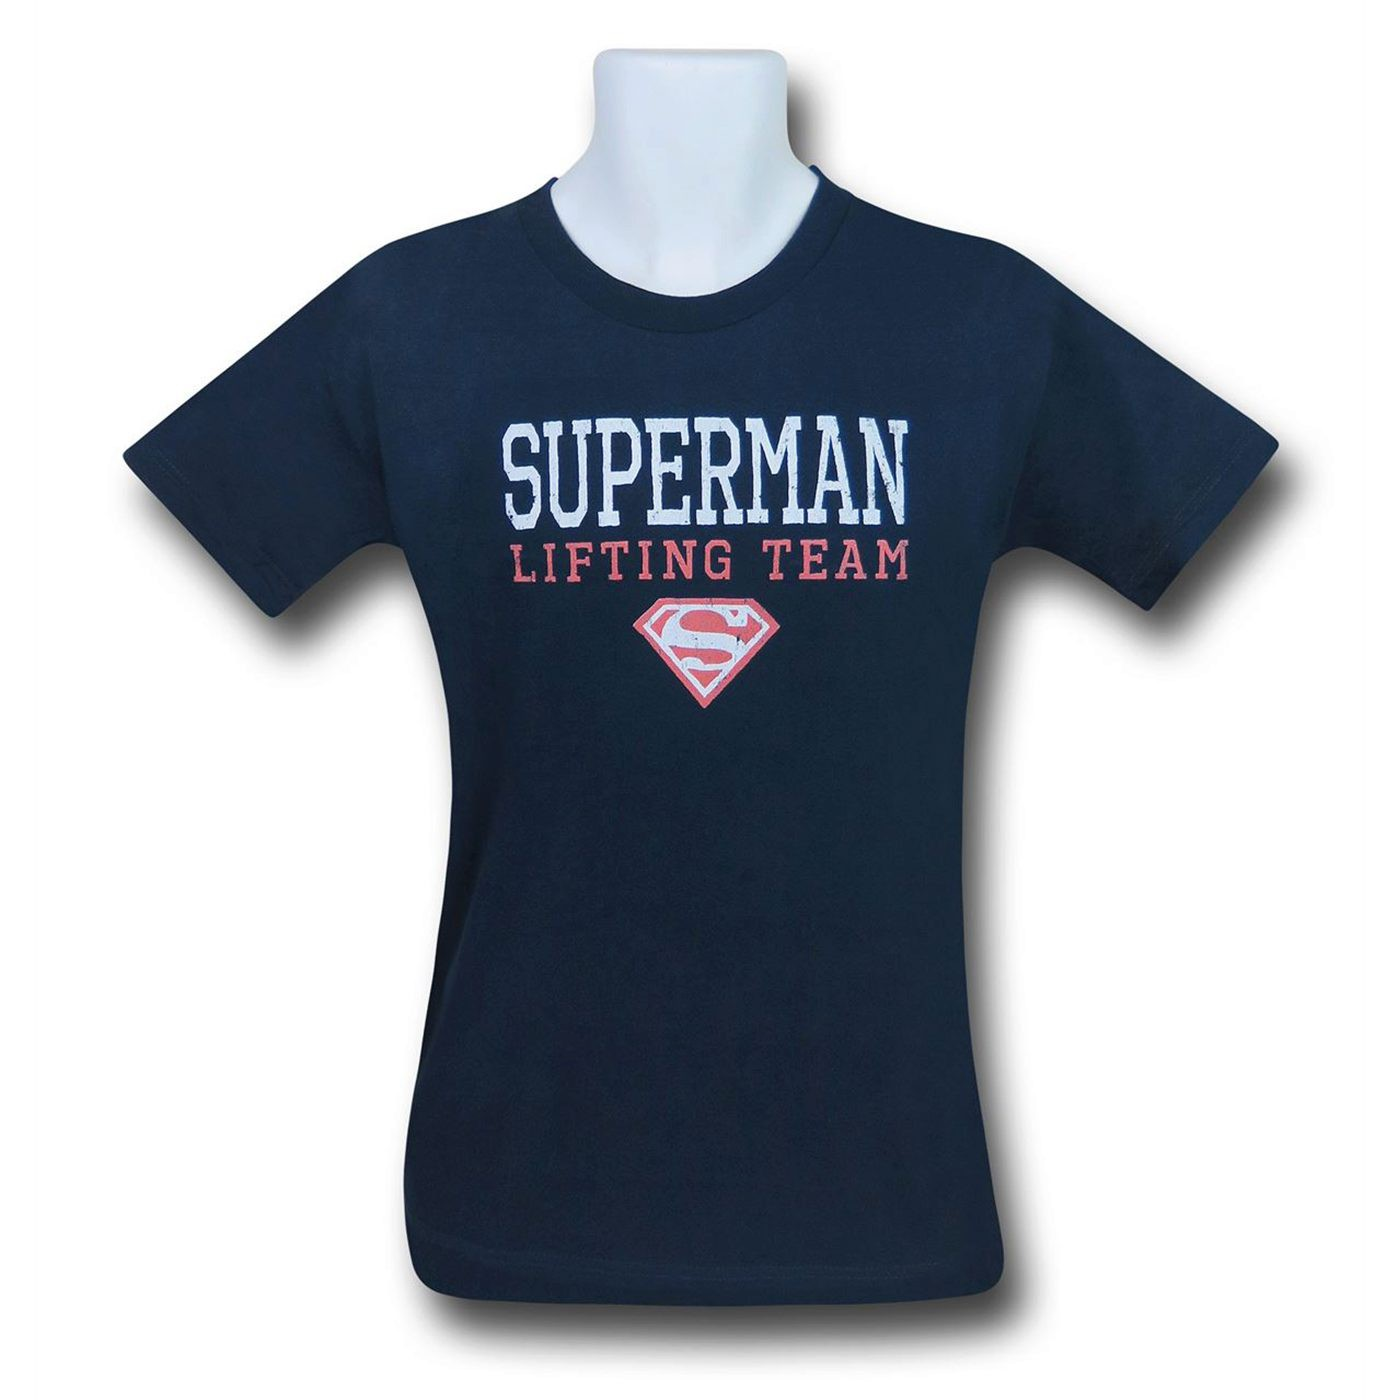 Superman Lifting Team Kids T-Shirts